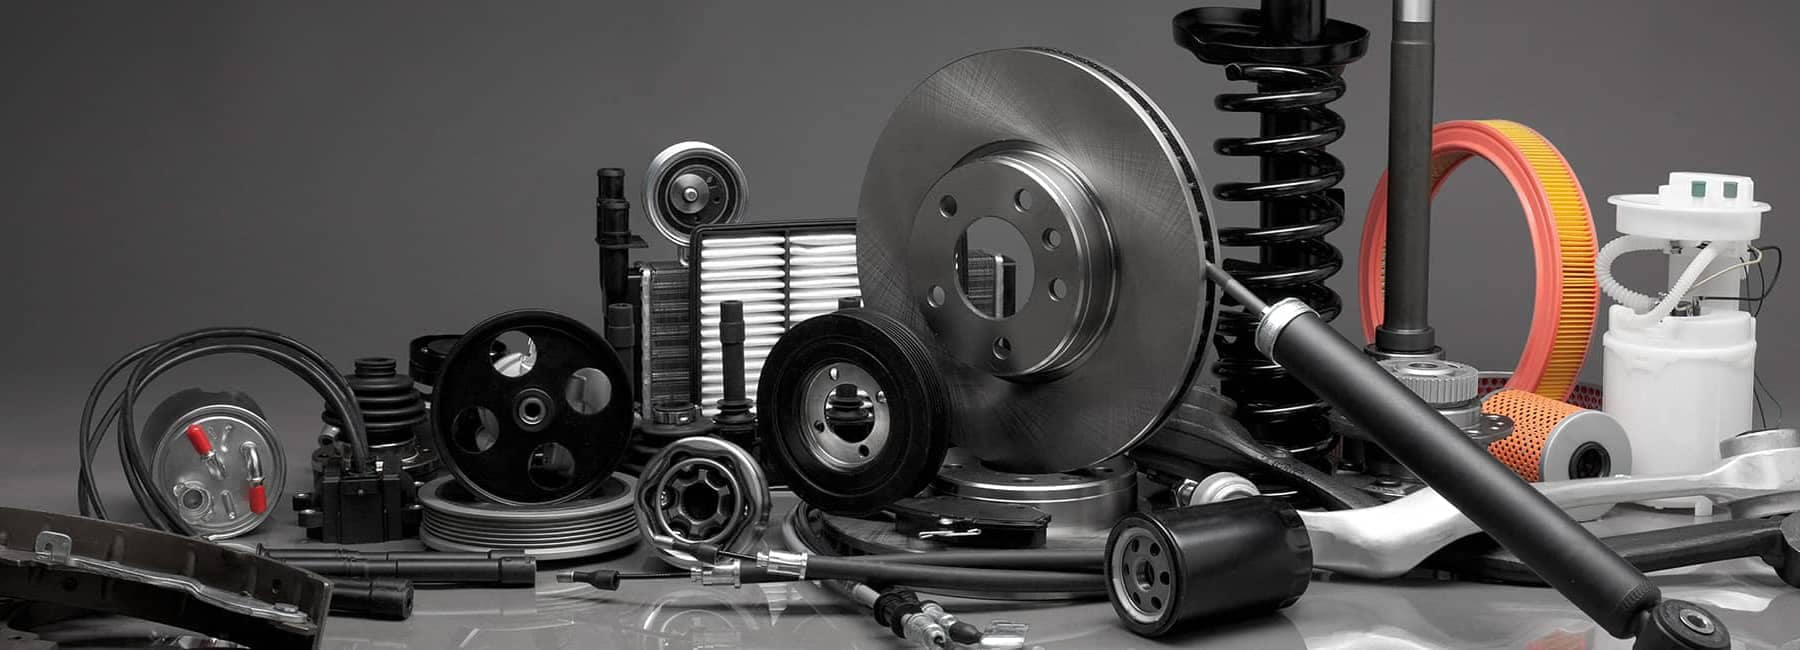 Various Car Parts Arranged on Table